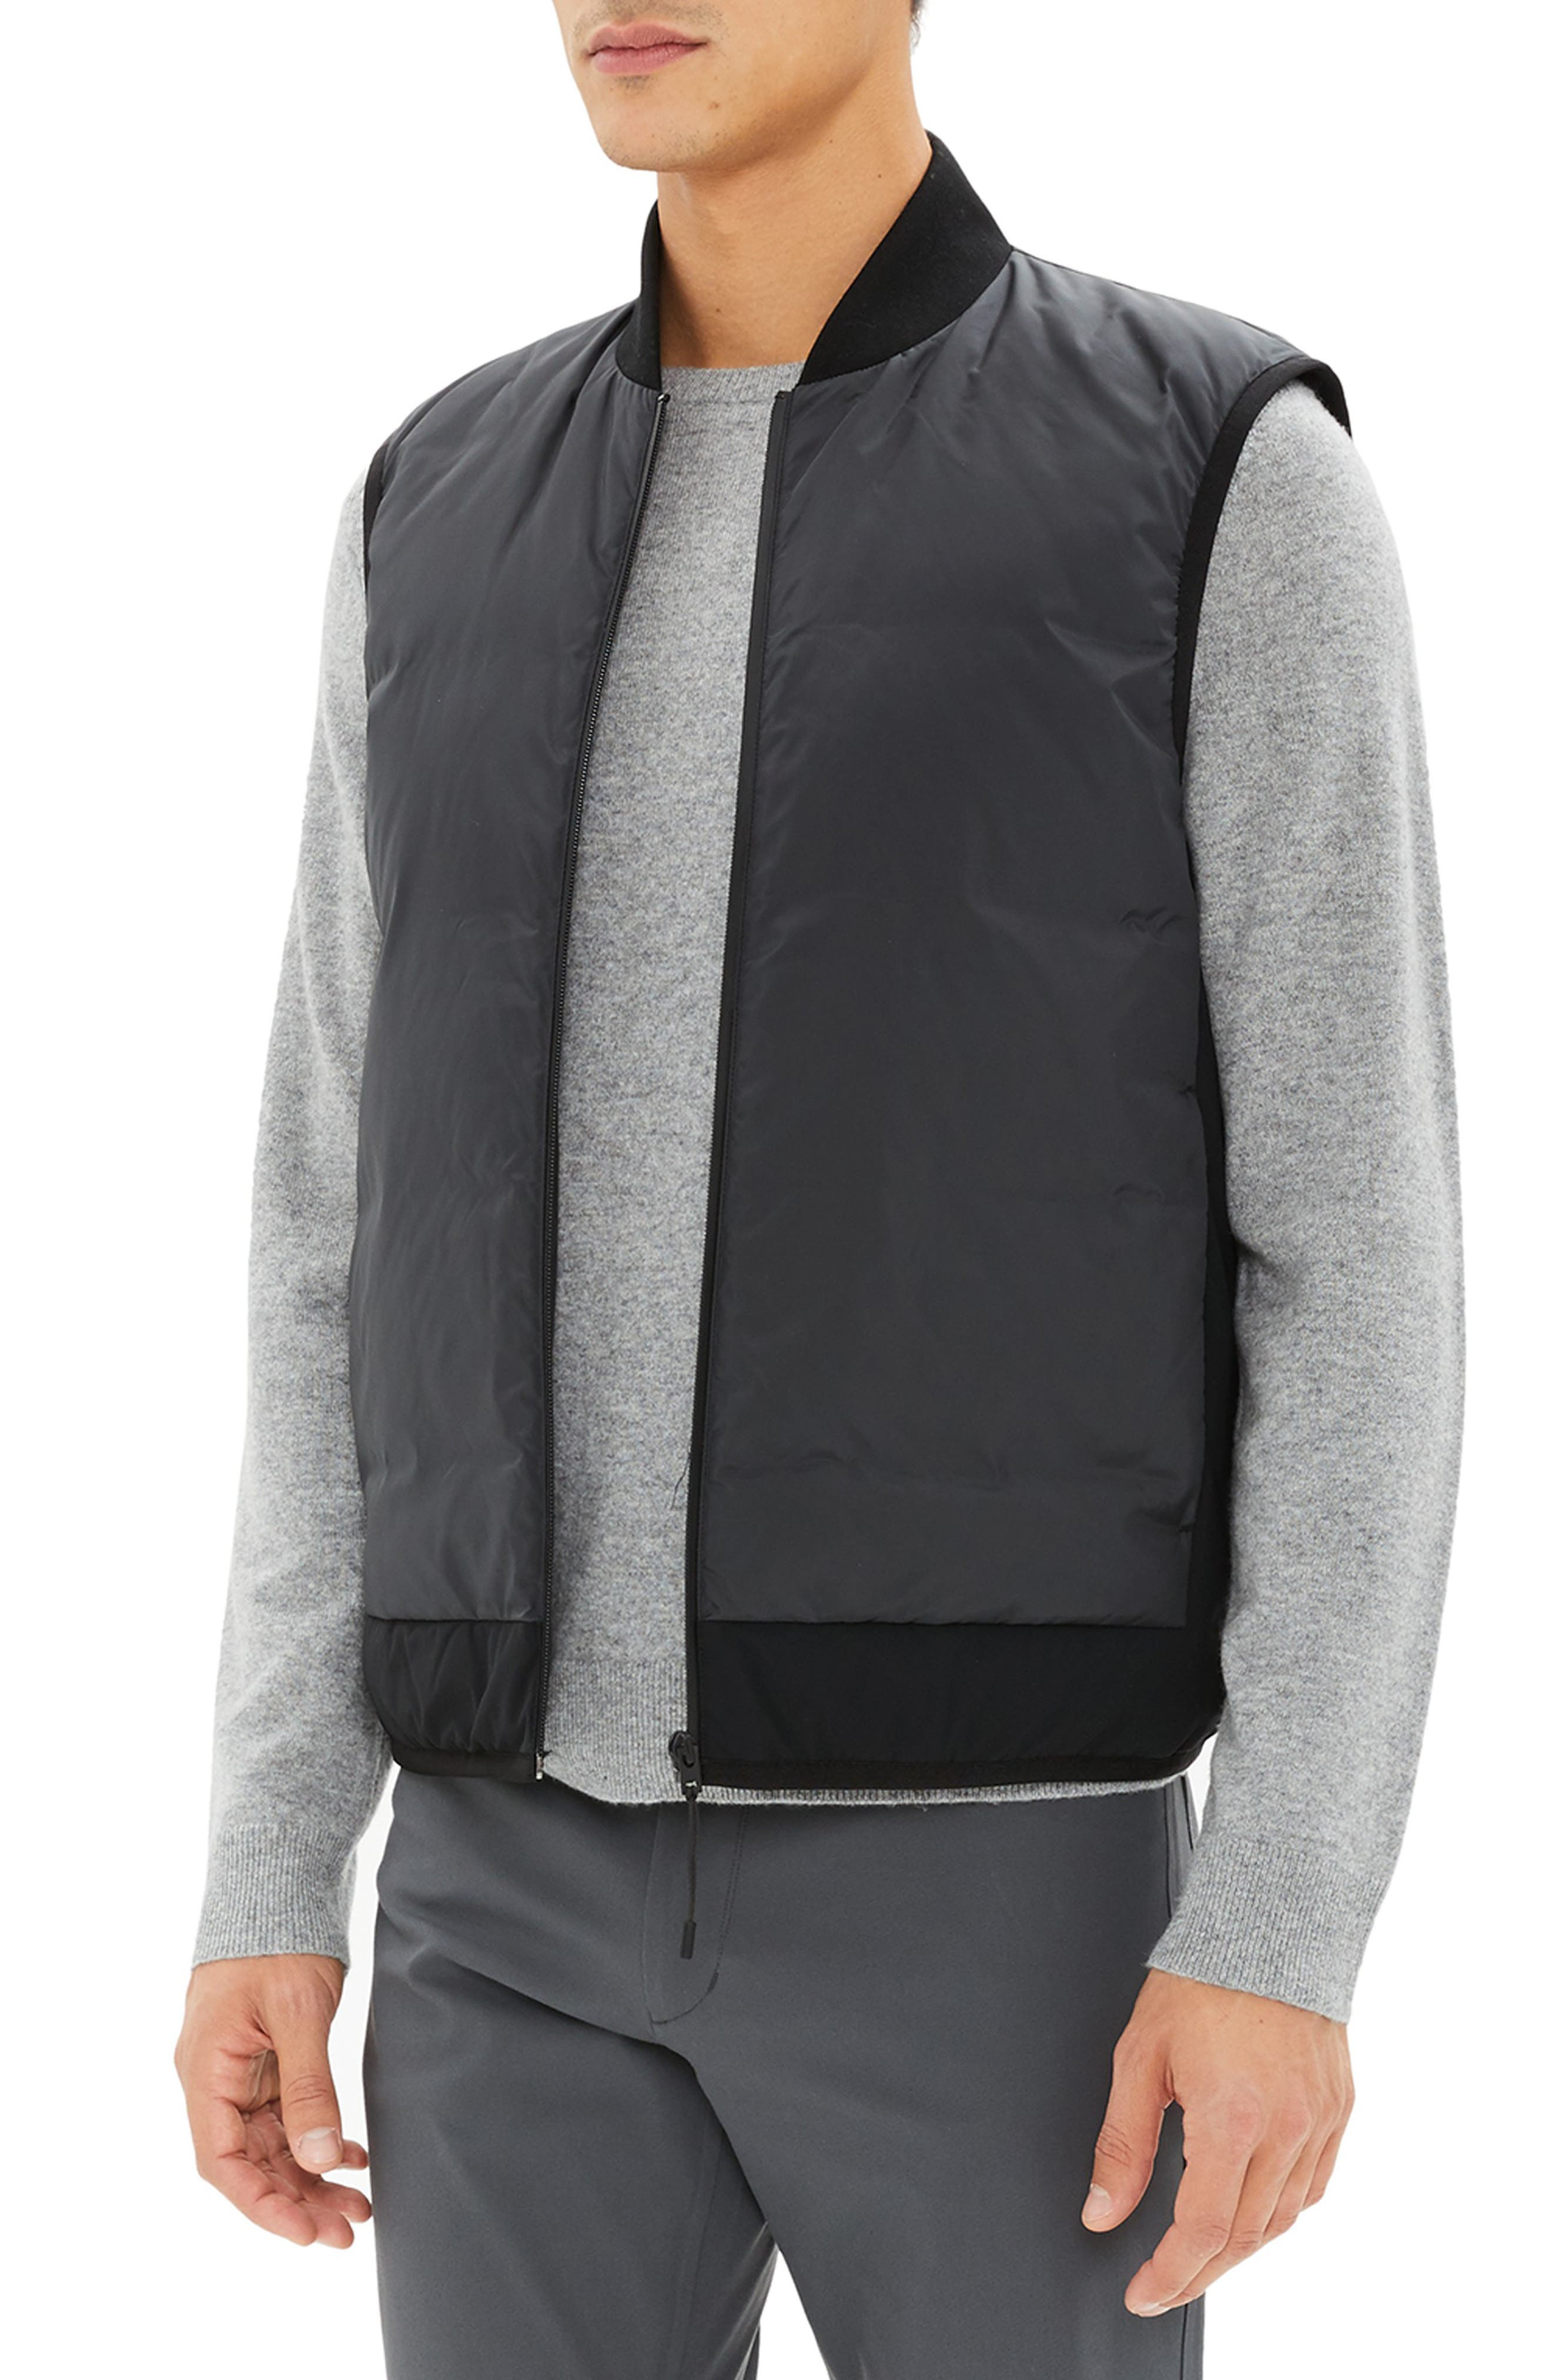 Greene Regular Fit Vest,                             Alternate thumbnail 3, color,                             001